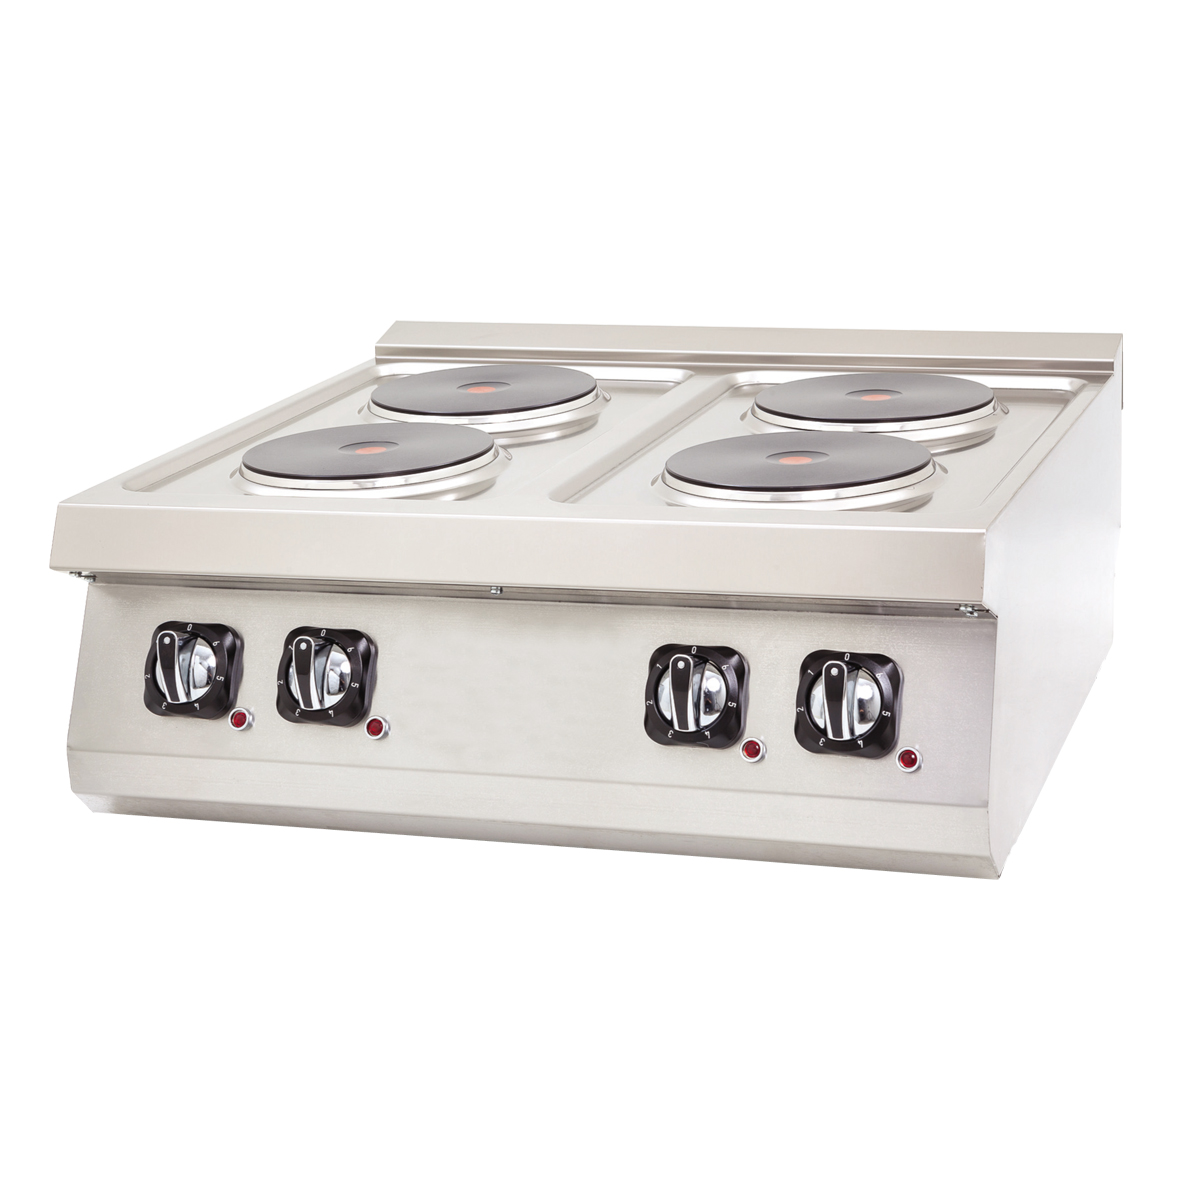 Electric Cooker - 60x60